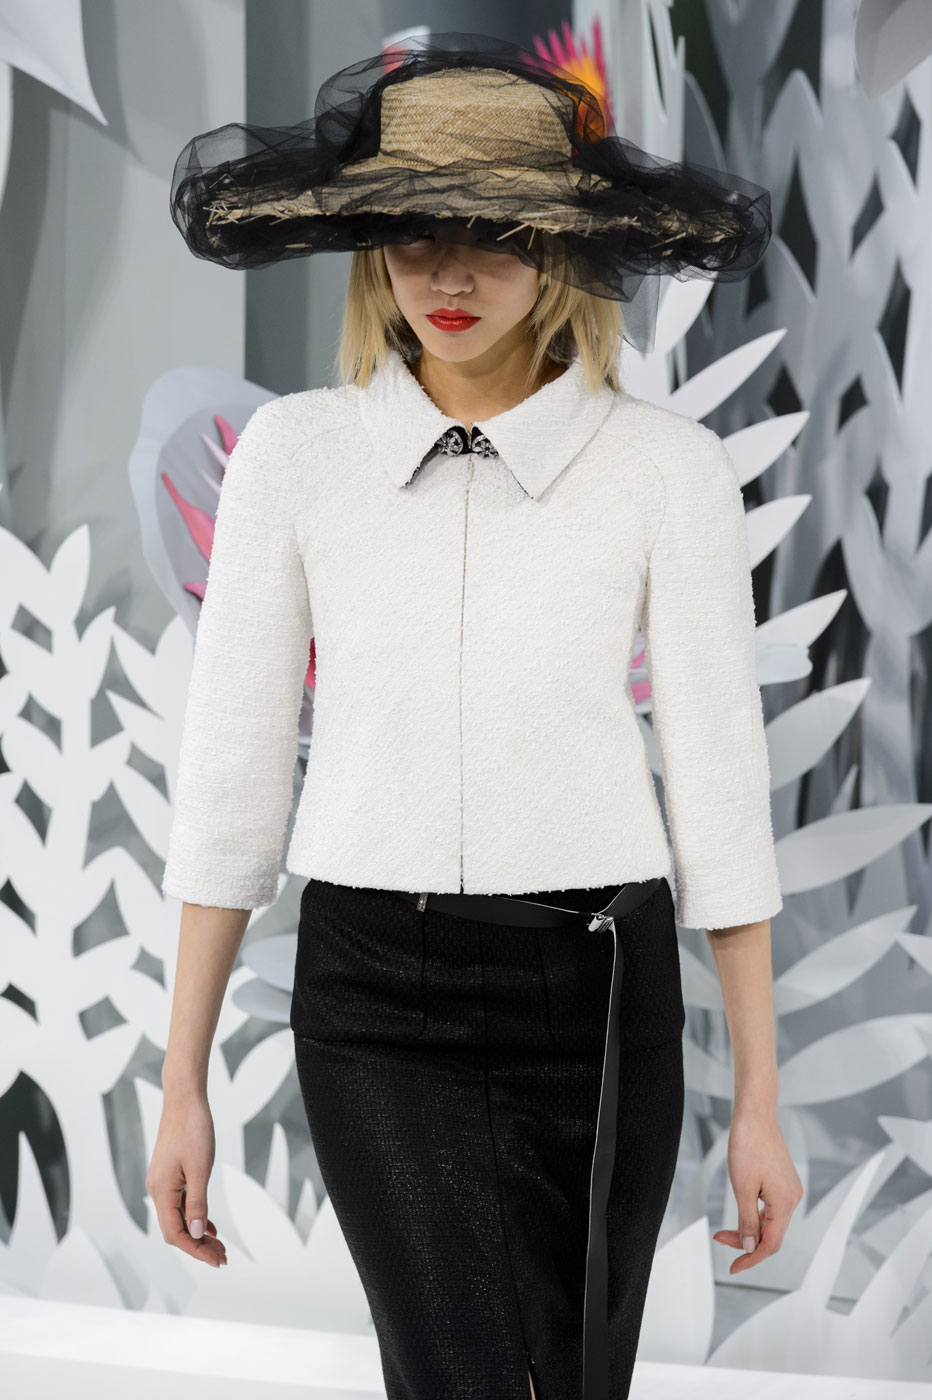 Chanel-fashion-runway-show-haute-couture-paris-spring-summer-2015-the-impression-028